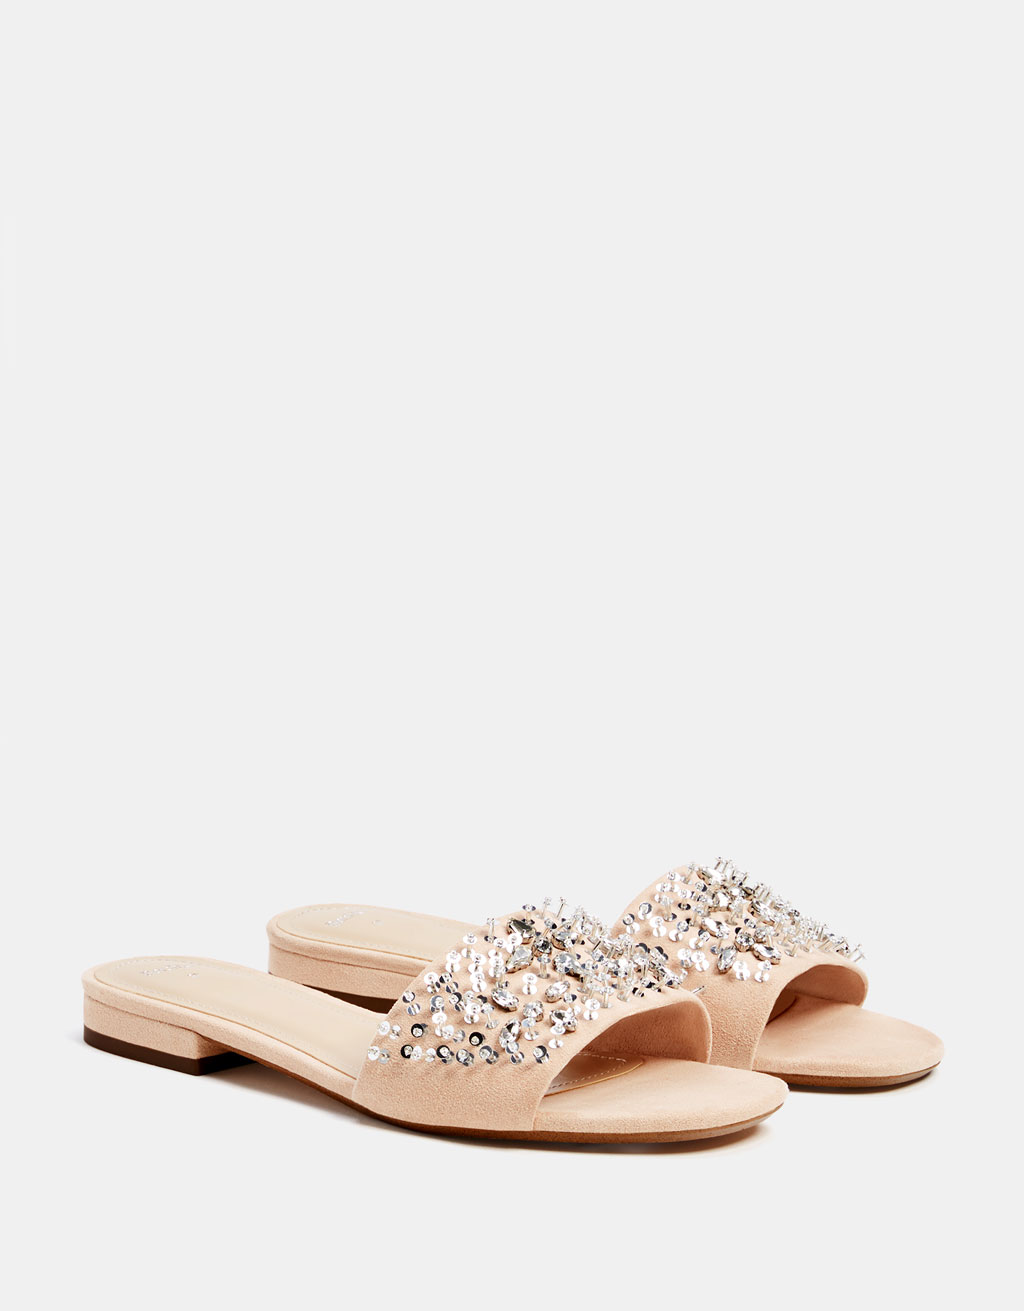 Bejewelled slides